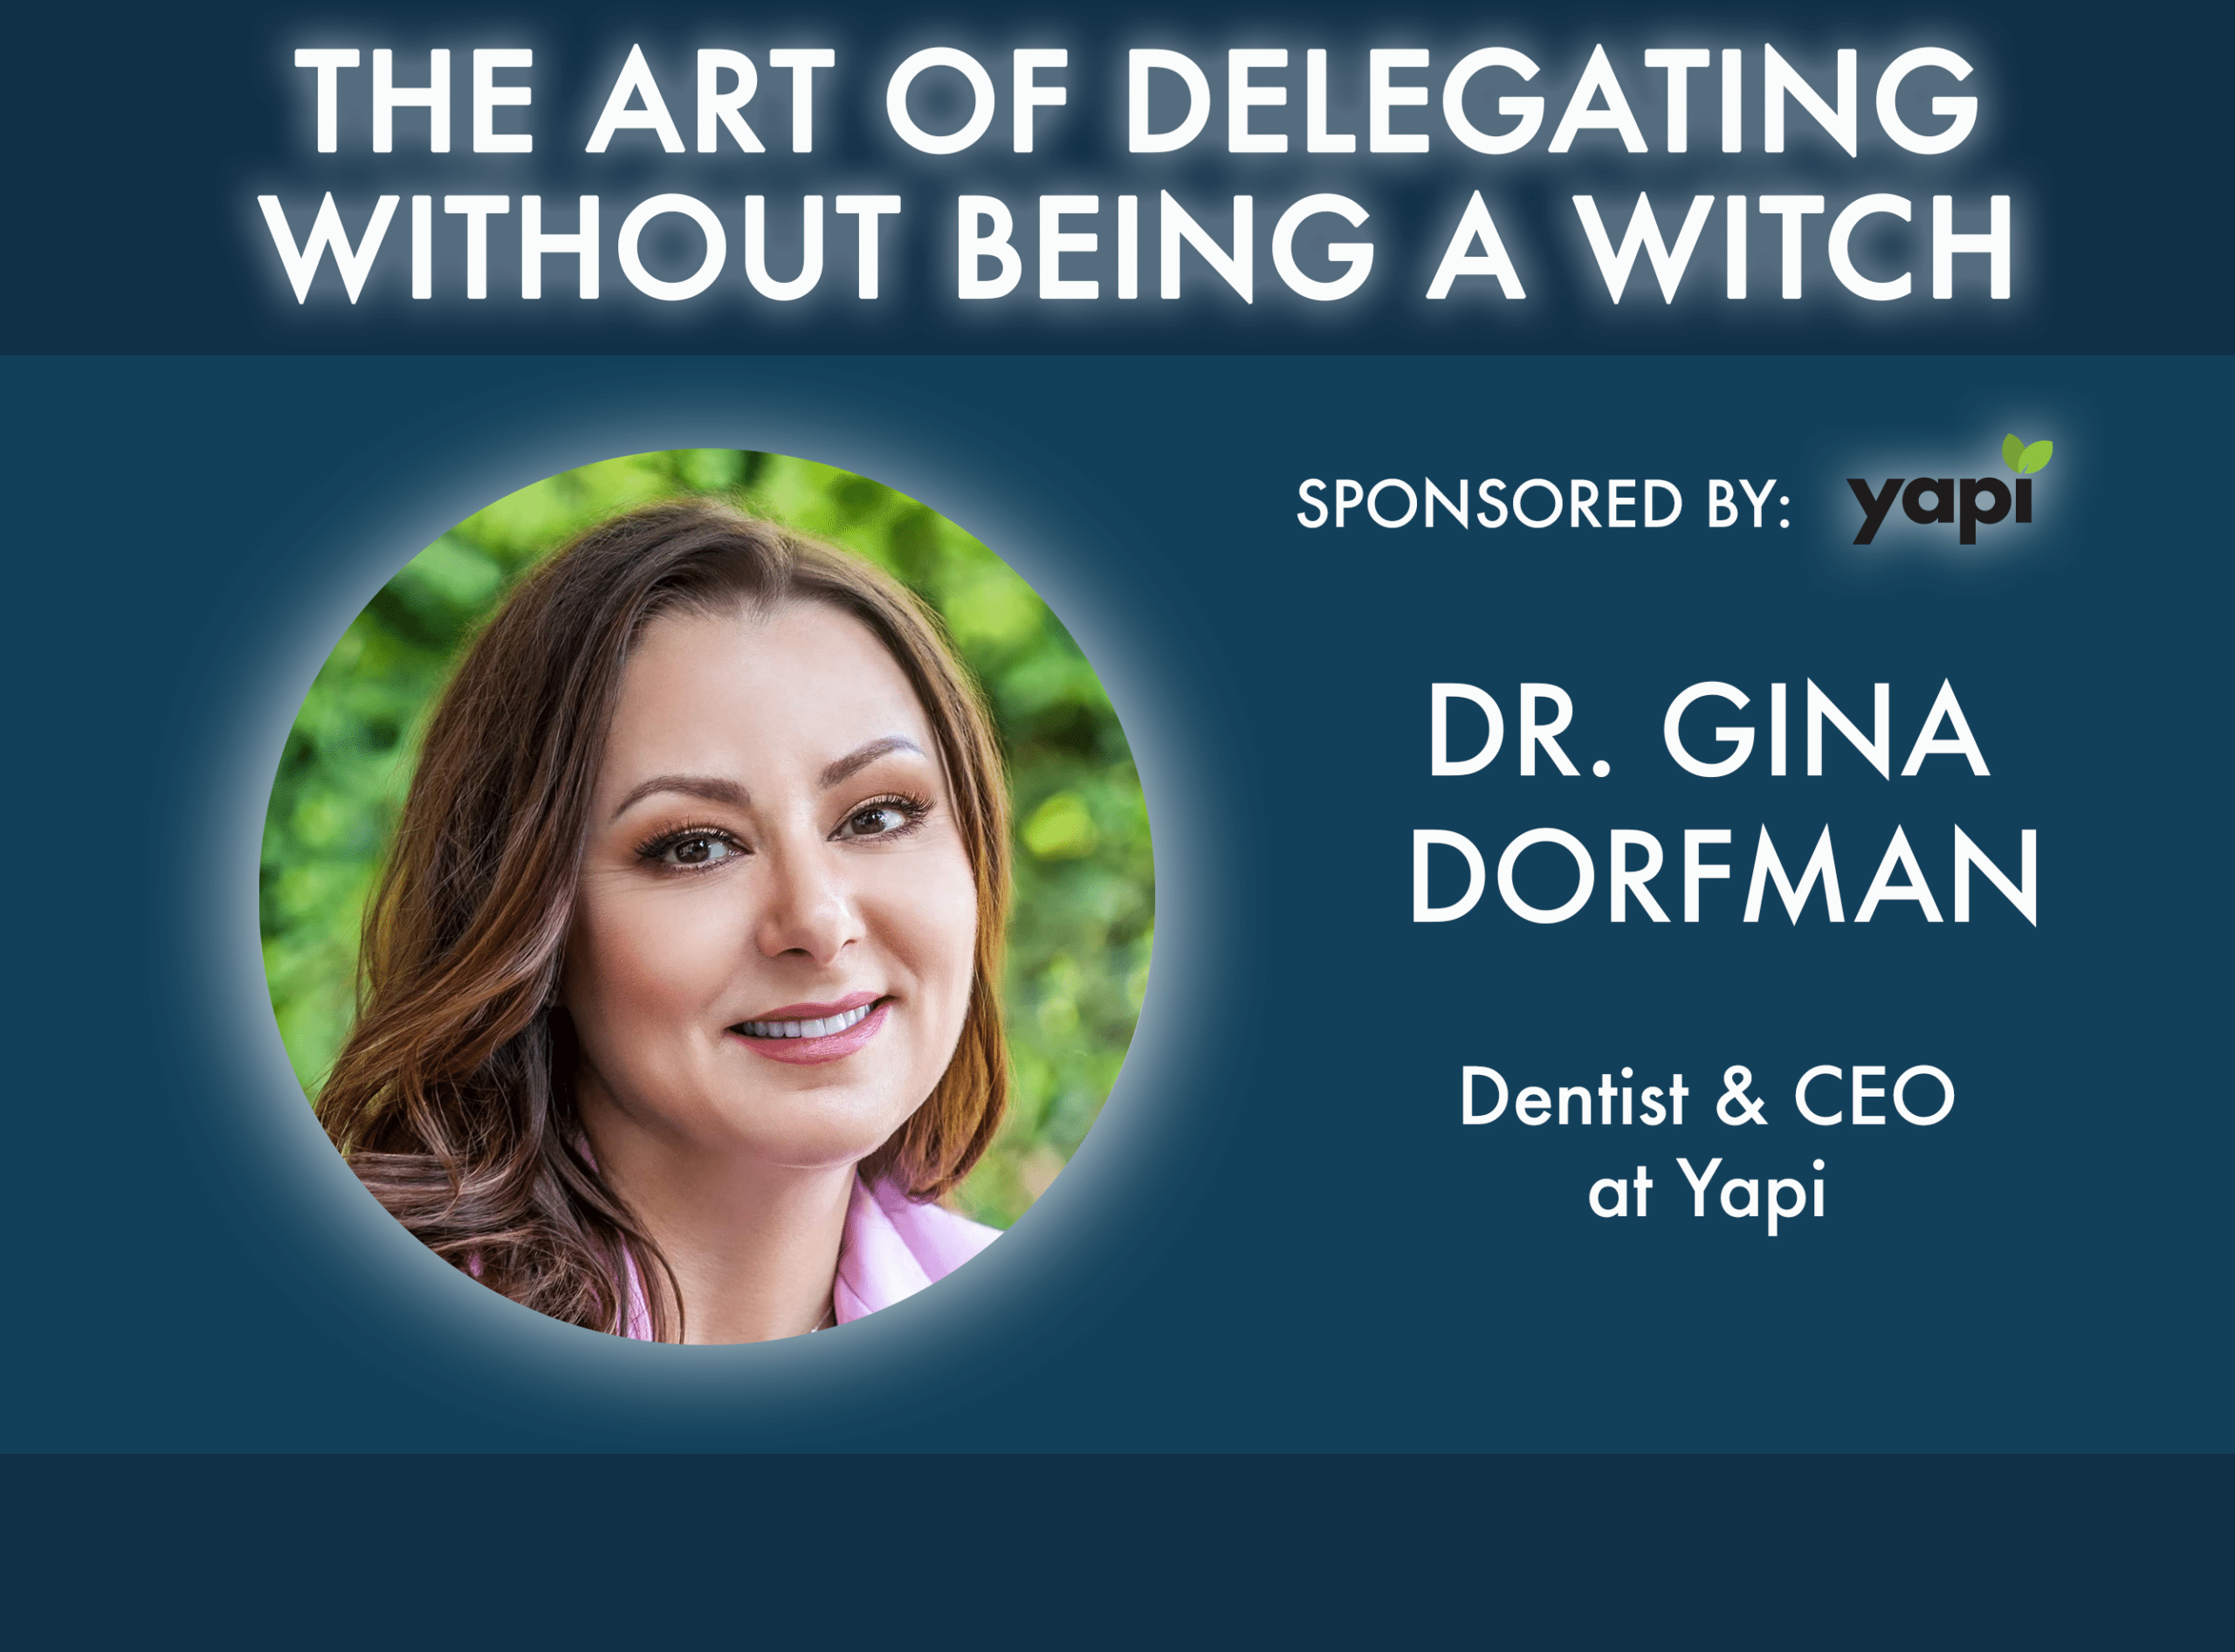 The Art of Delegating Without Being A Witch